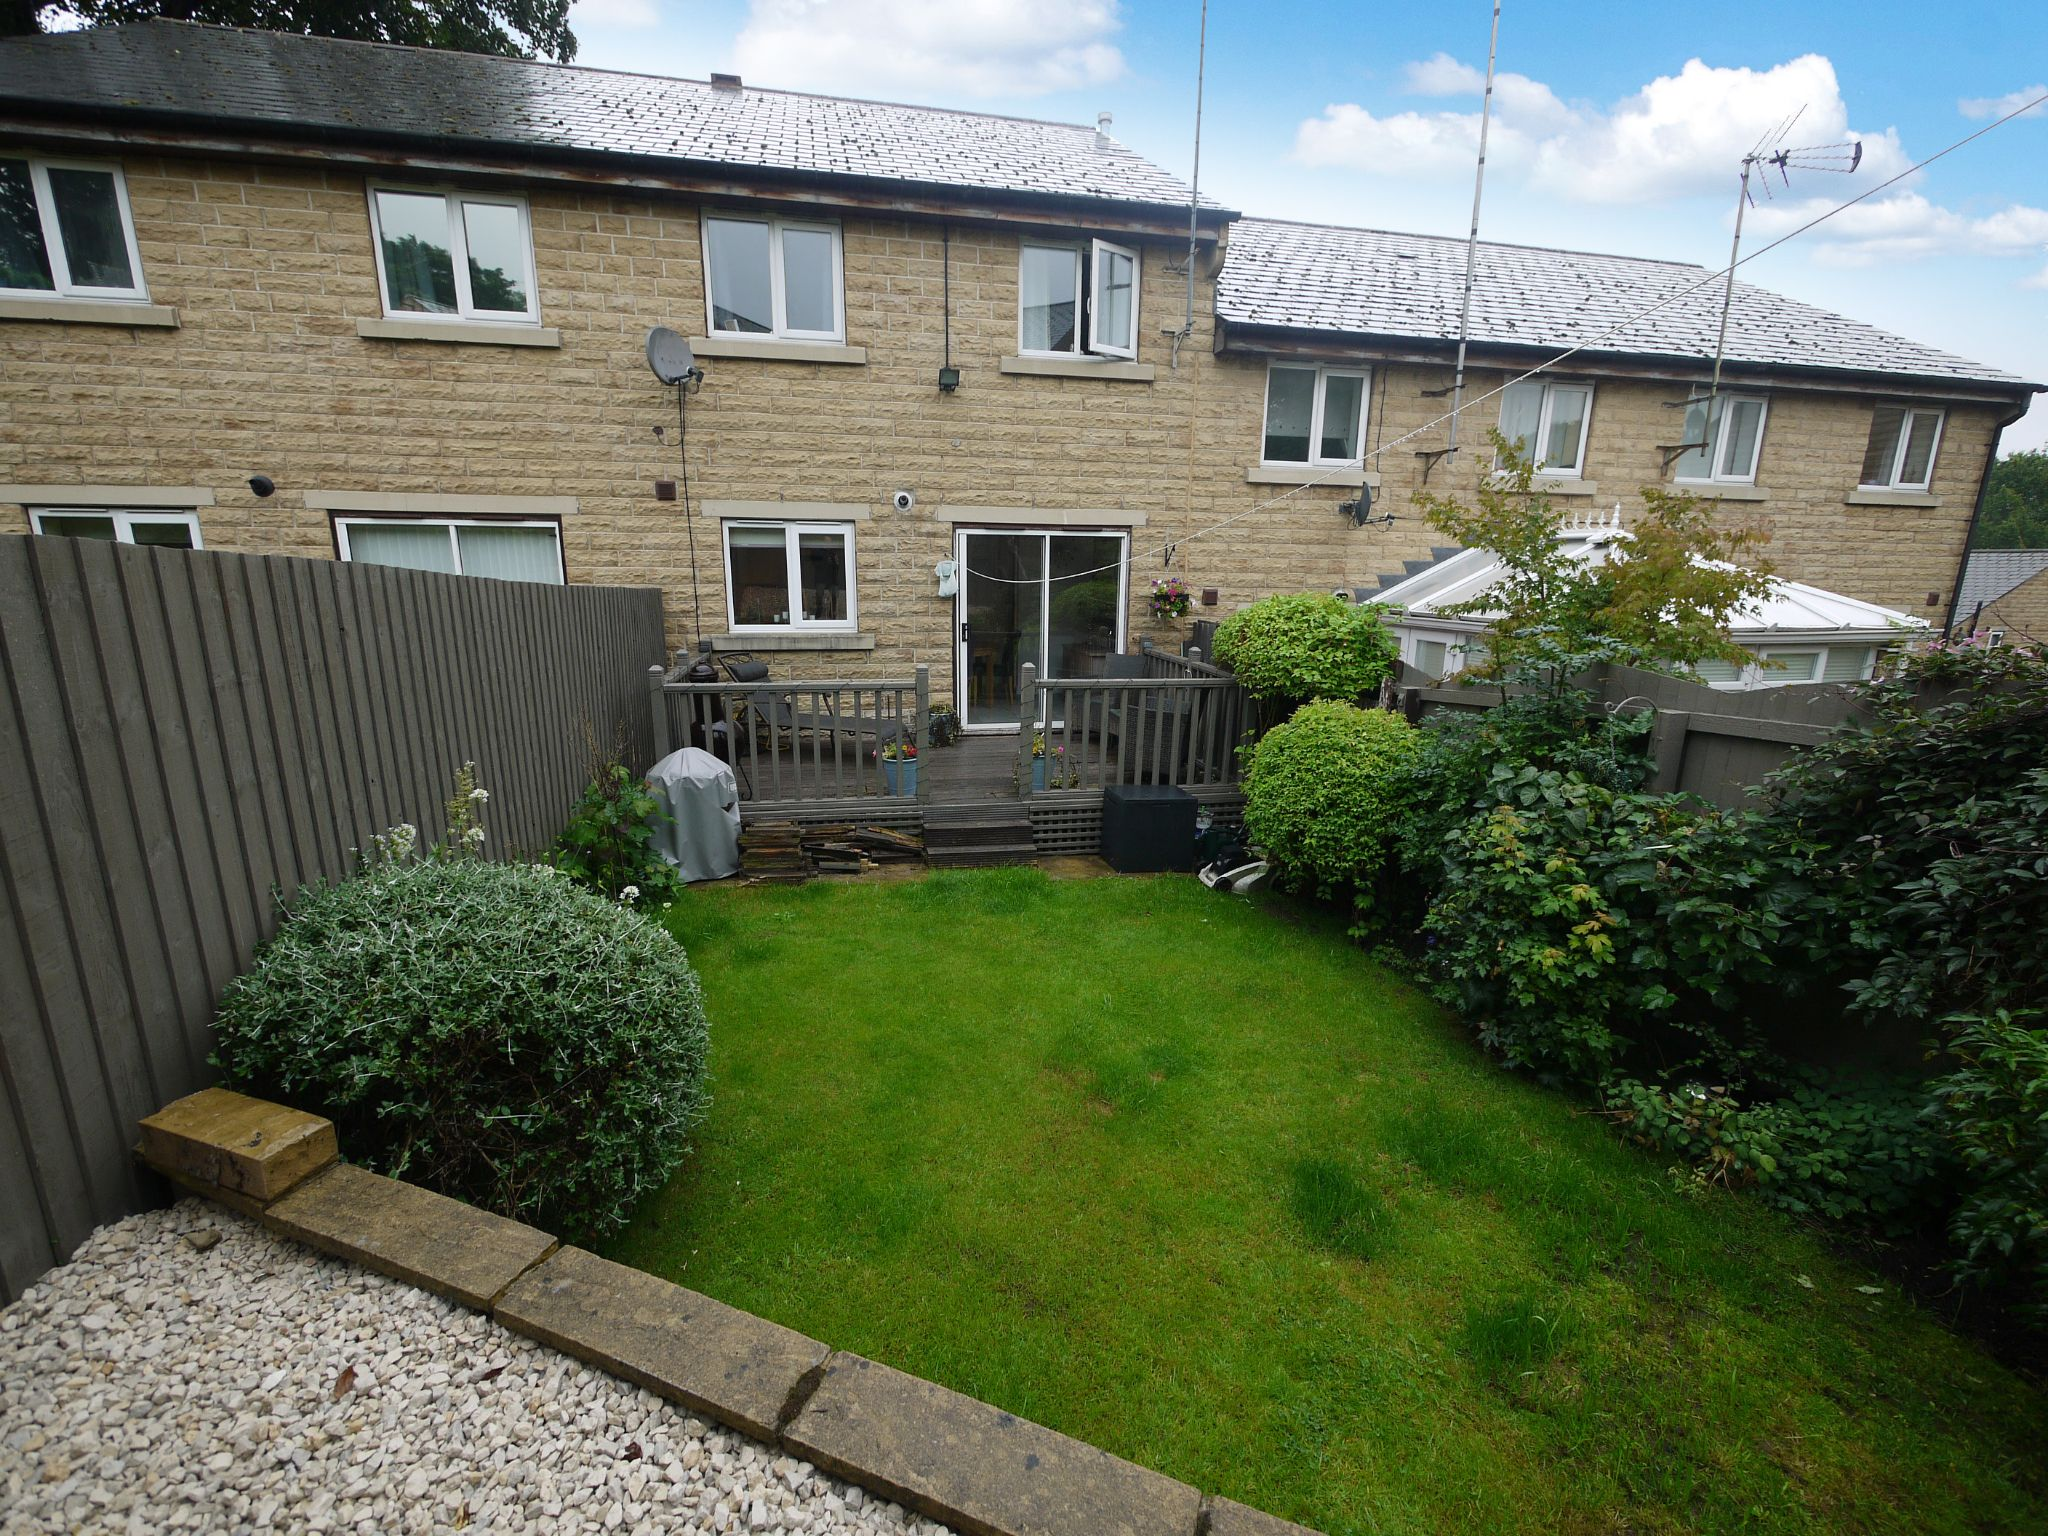 4 bedroom town house For Sale in Brighouse - Rear.